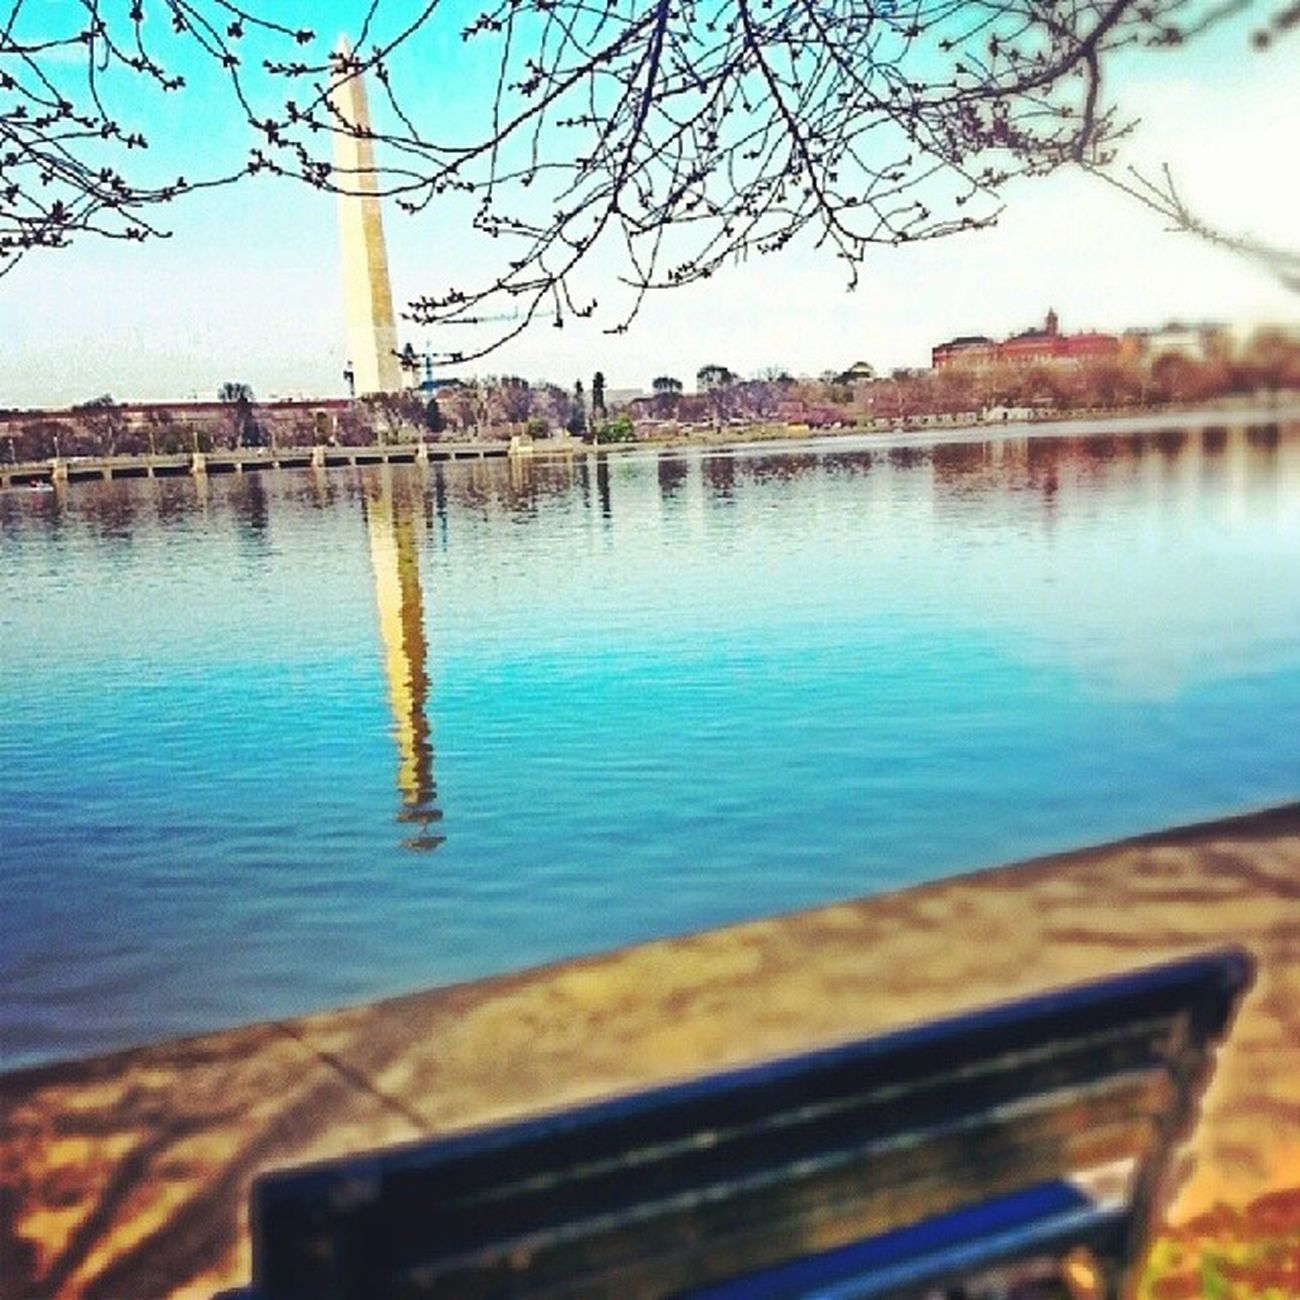 Even with all the tourists, you can still find some place quiet. Why I love DC *..